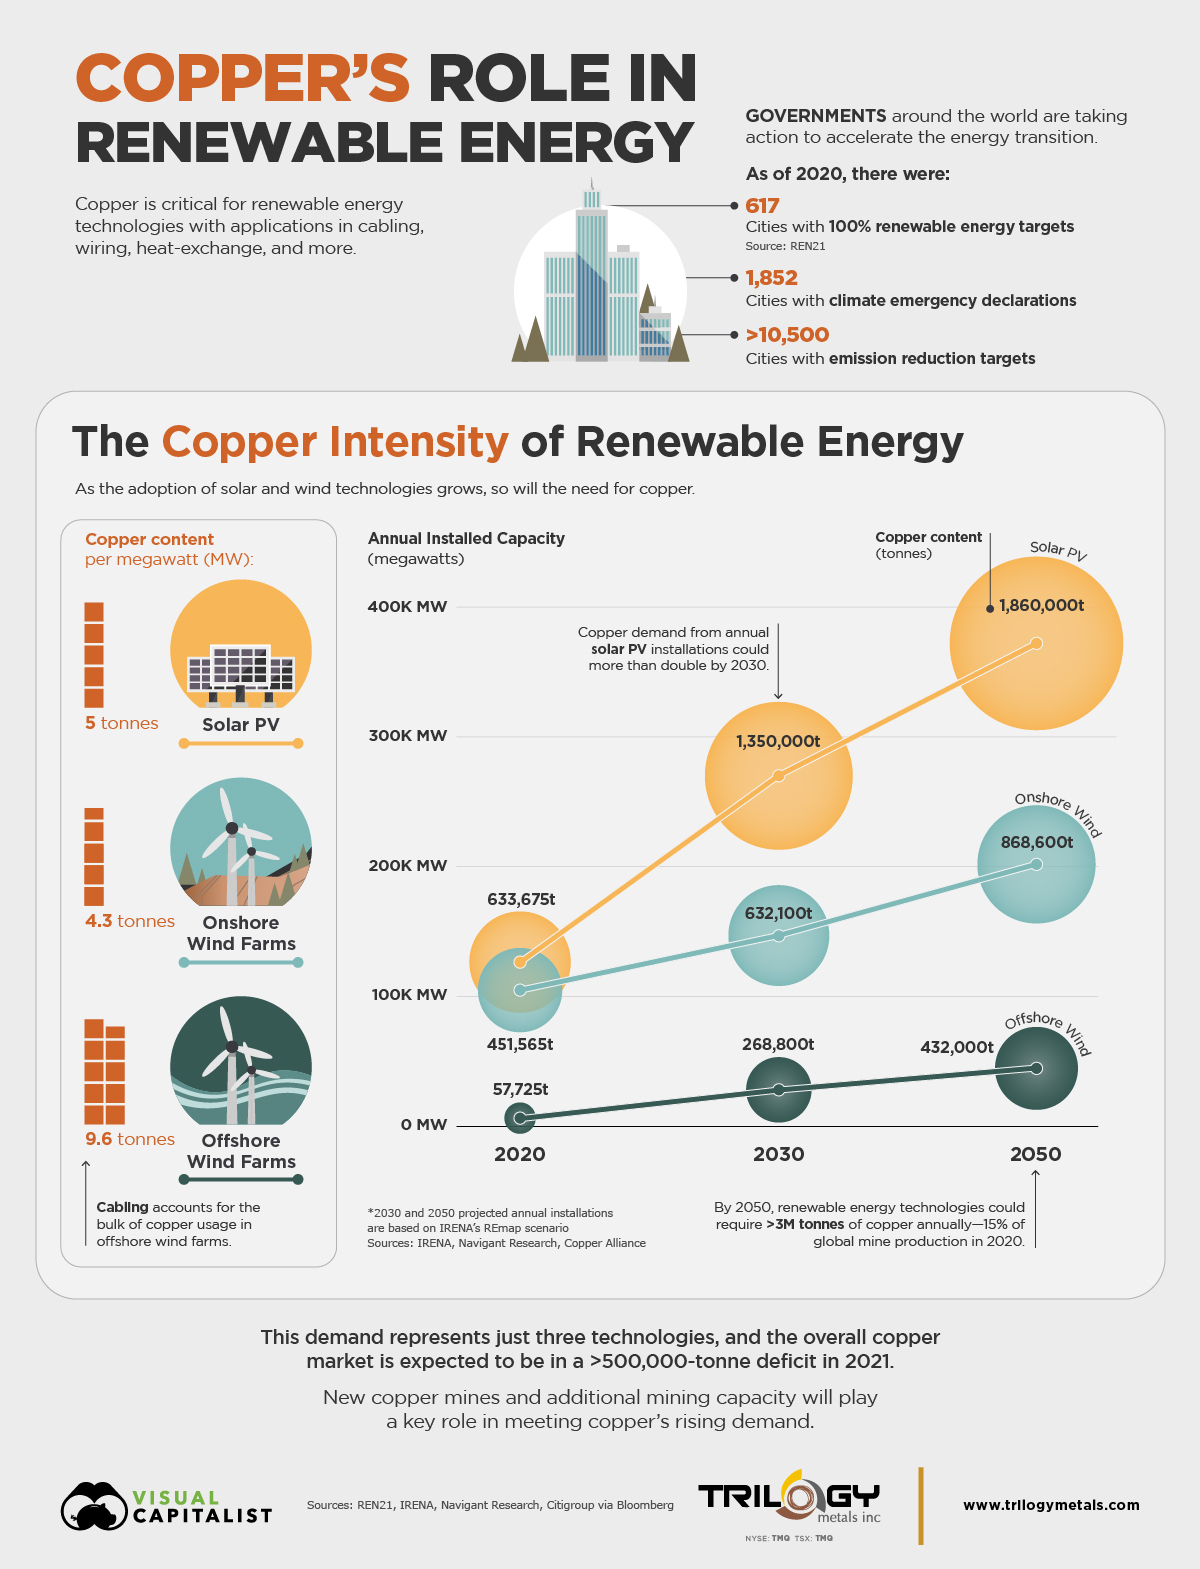 trilogy-metals-impact-graphic-2-published.jpg